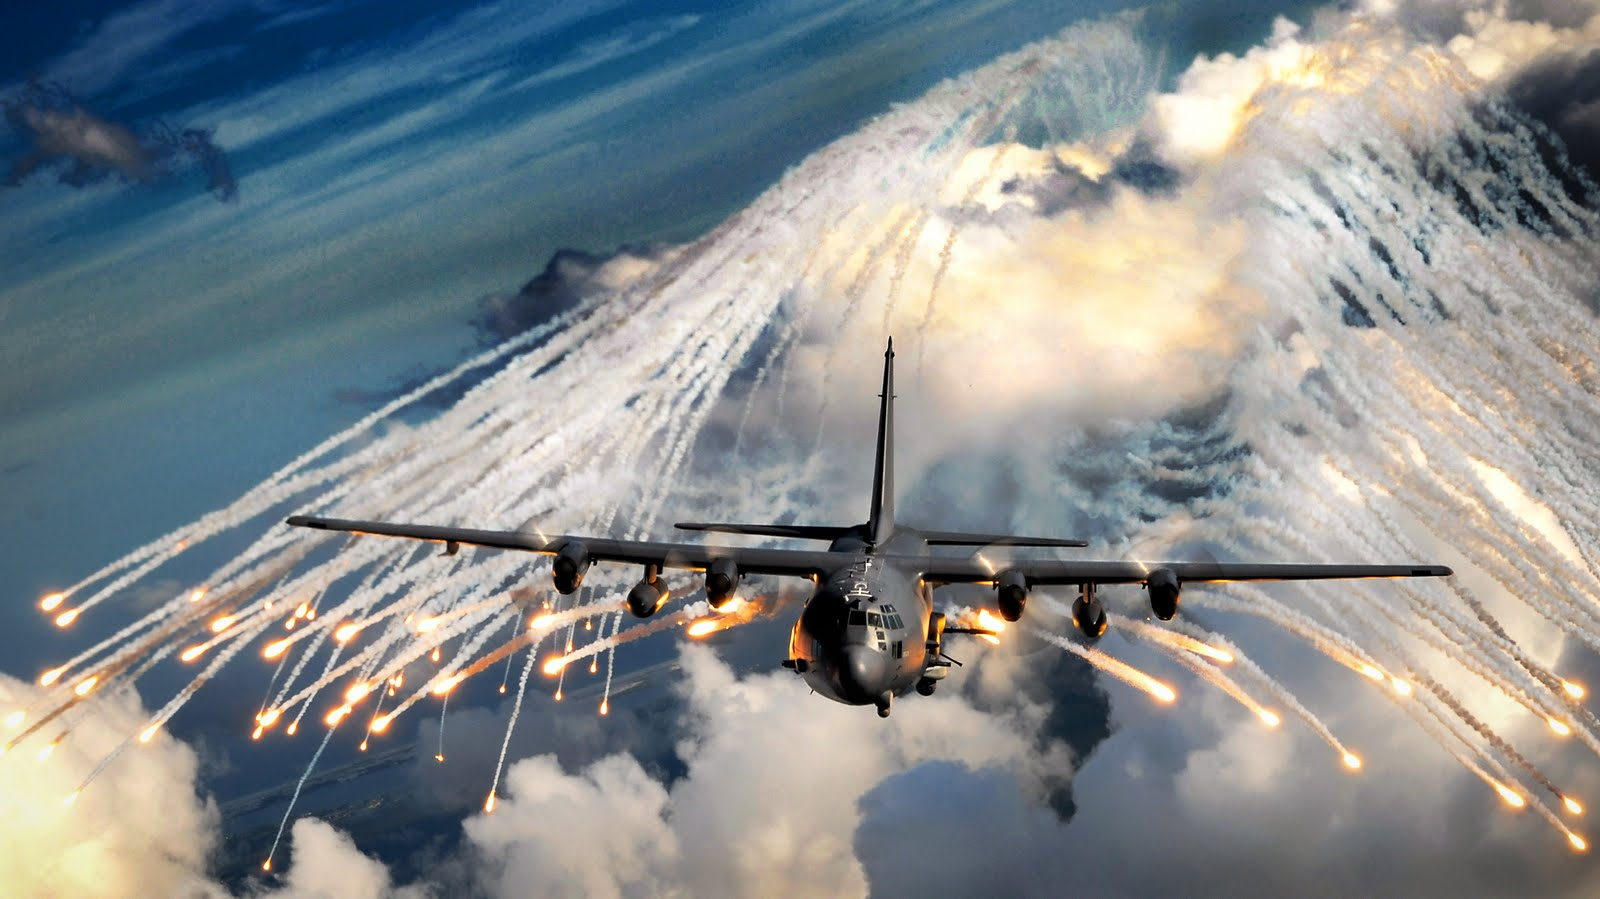 The AC130 Gunship in Action  Militarycom